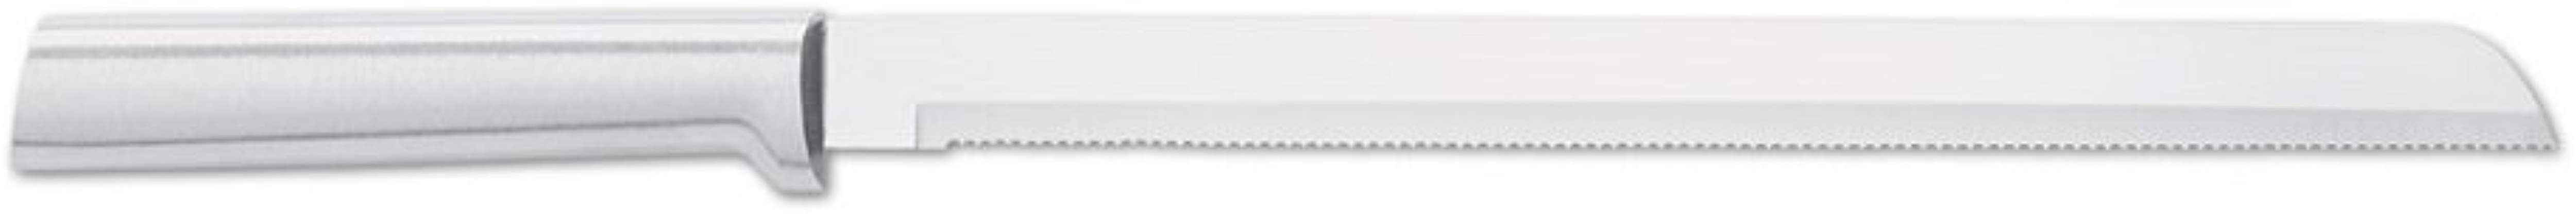 Rada Cutlery 10 Inch Stainless Steel Bread Knife With Silver Aluminum Handle Made In USA